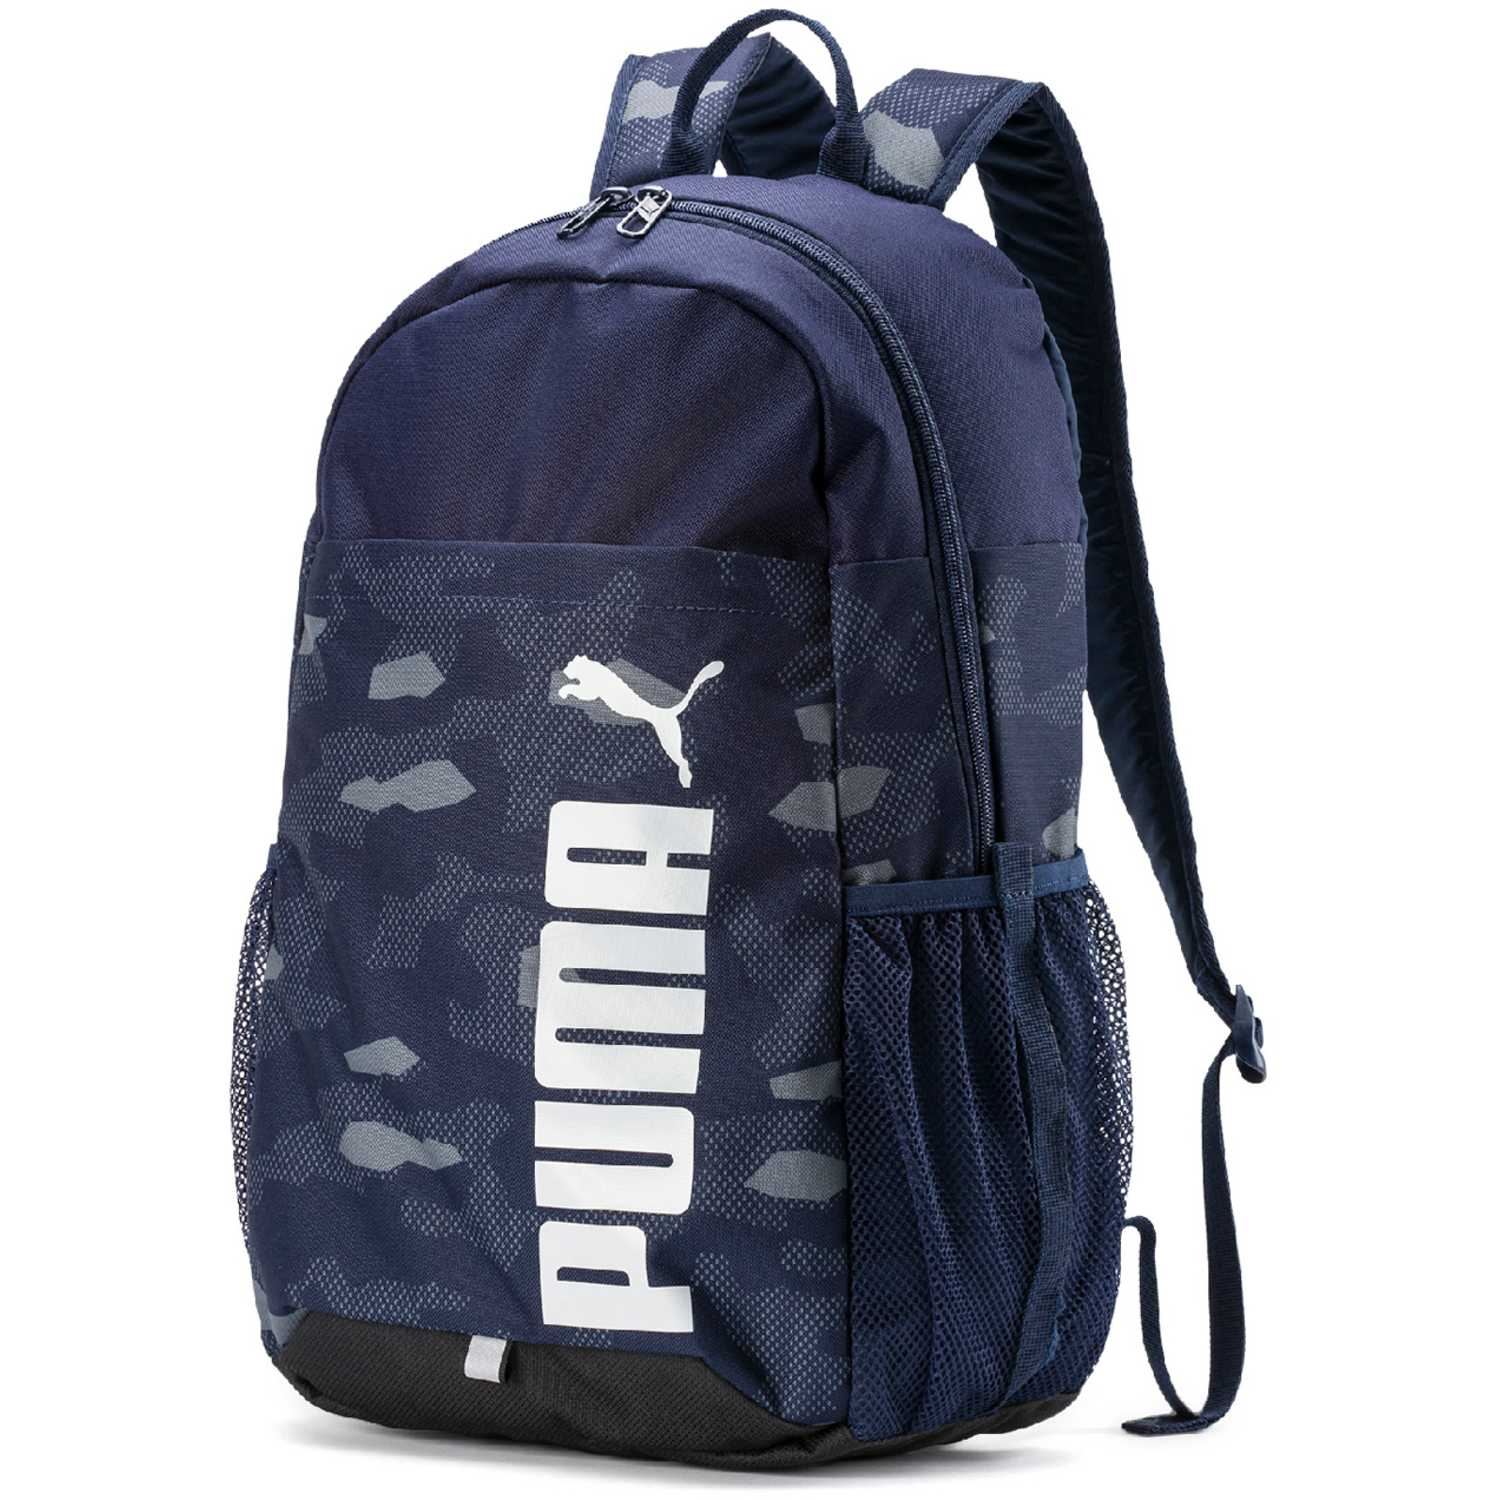 Puma puma style backpack Azul / blanco Mochilas Multipropósitos